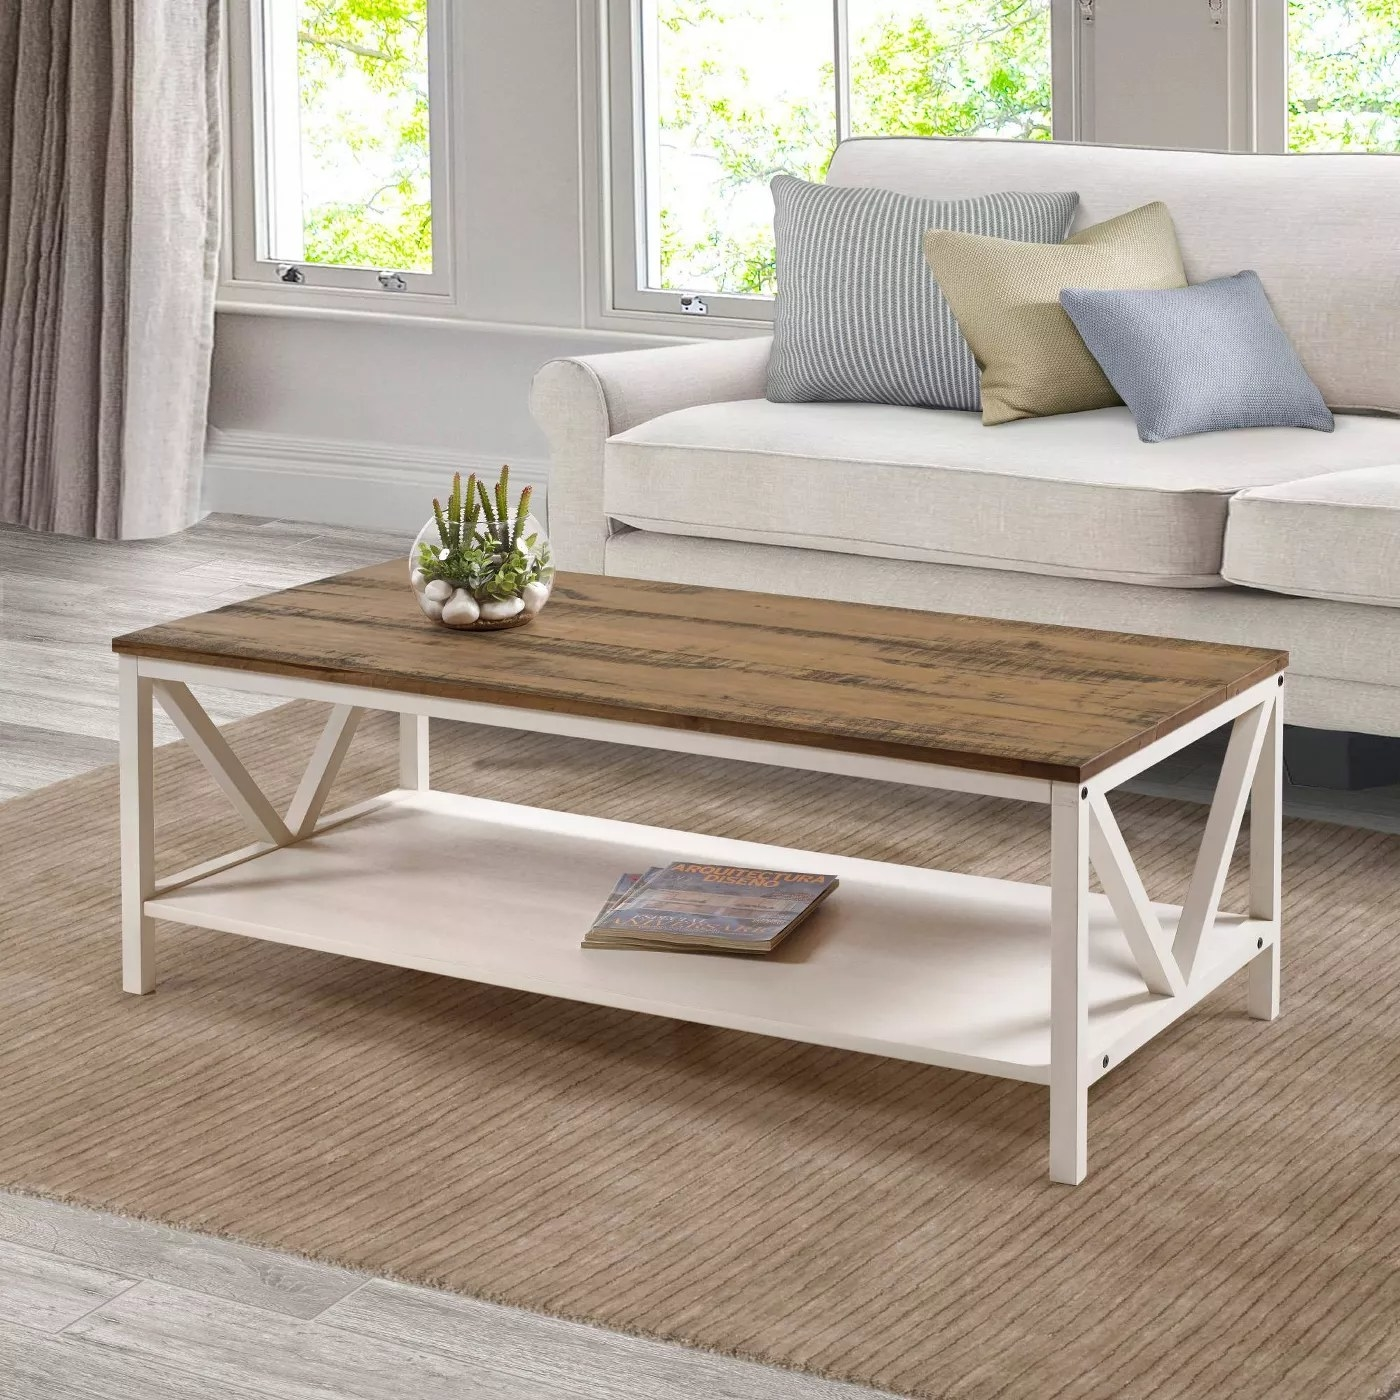 The coffee table in barnwood/white